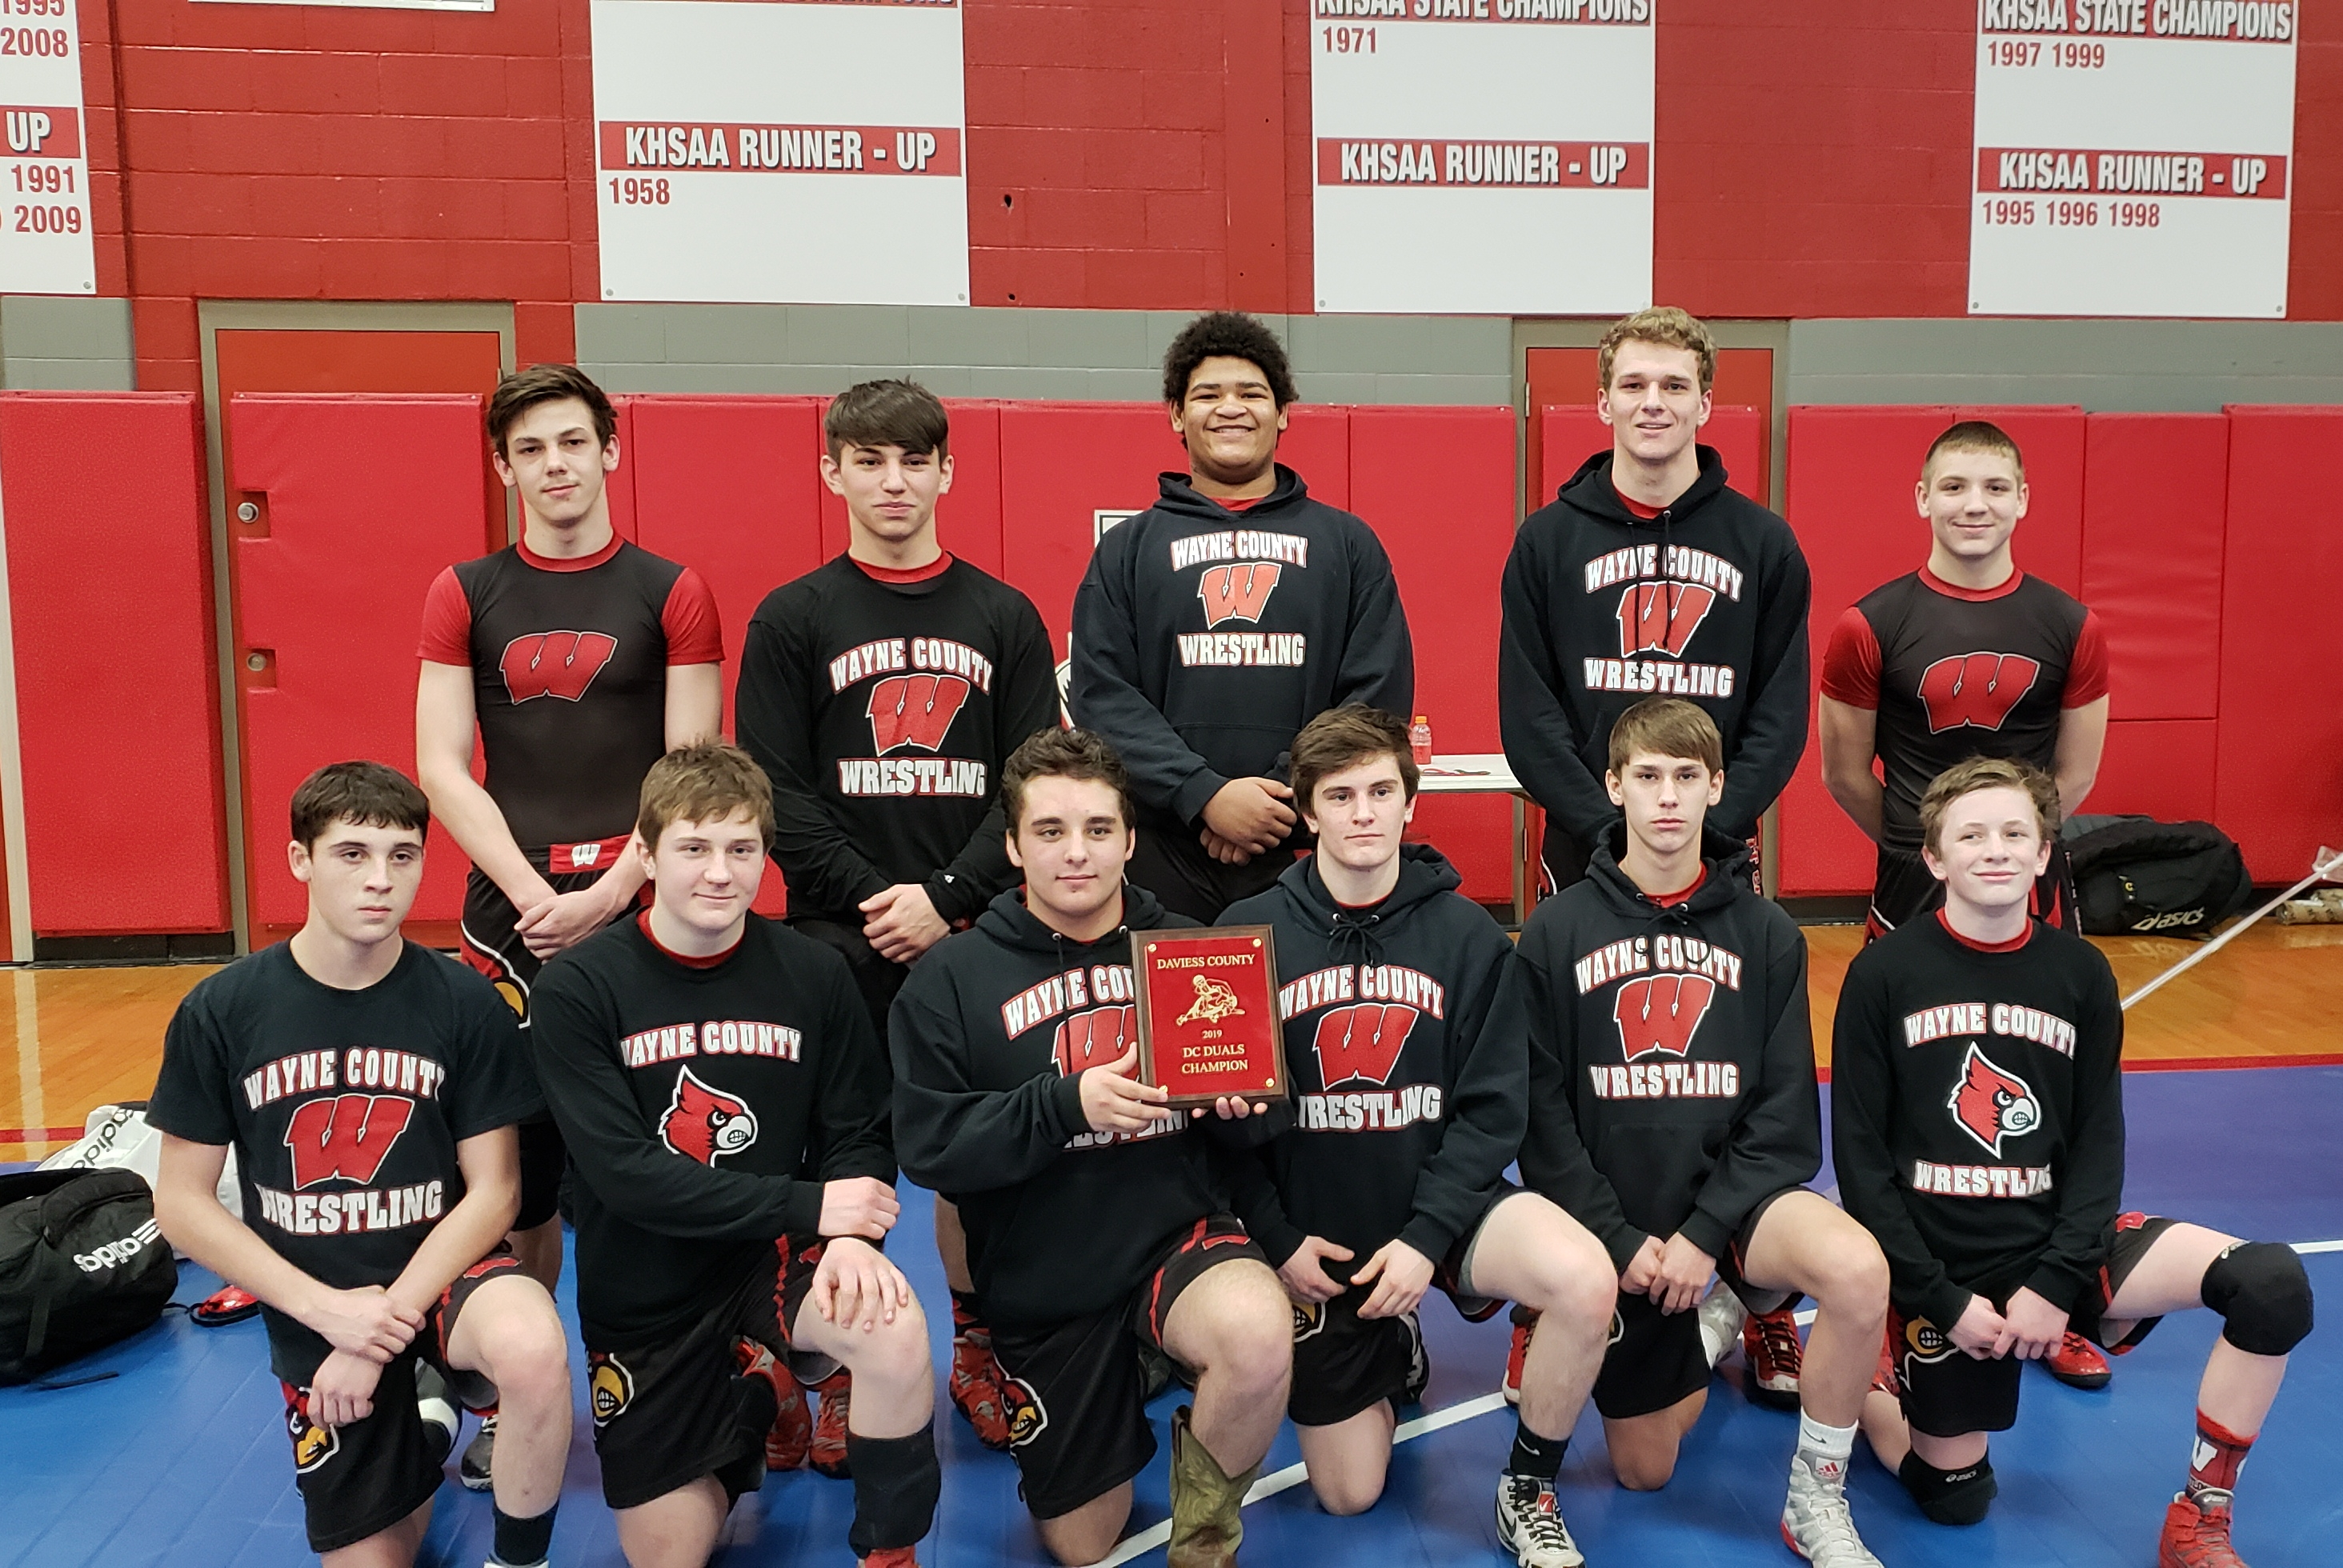 Wayne County High School Mat Cards